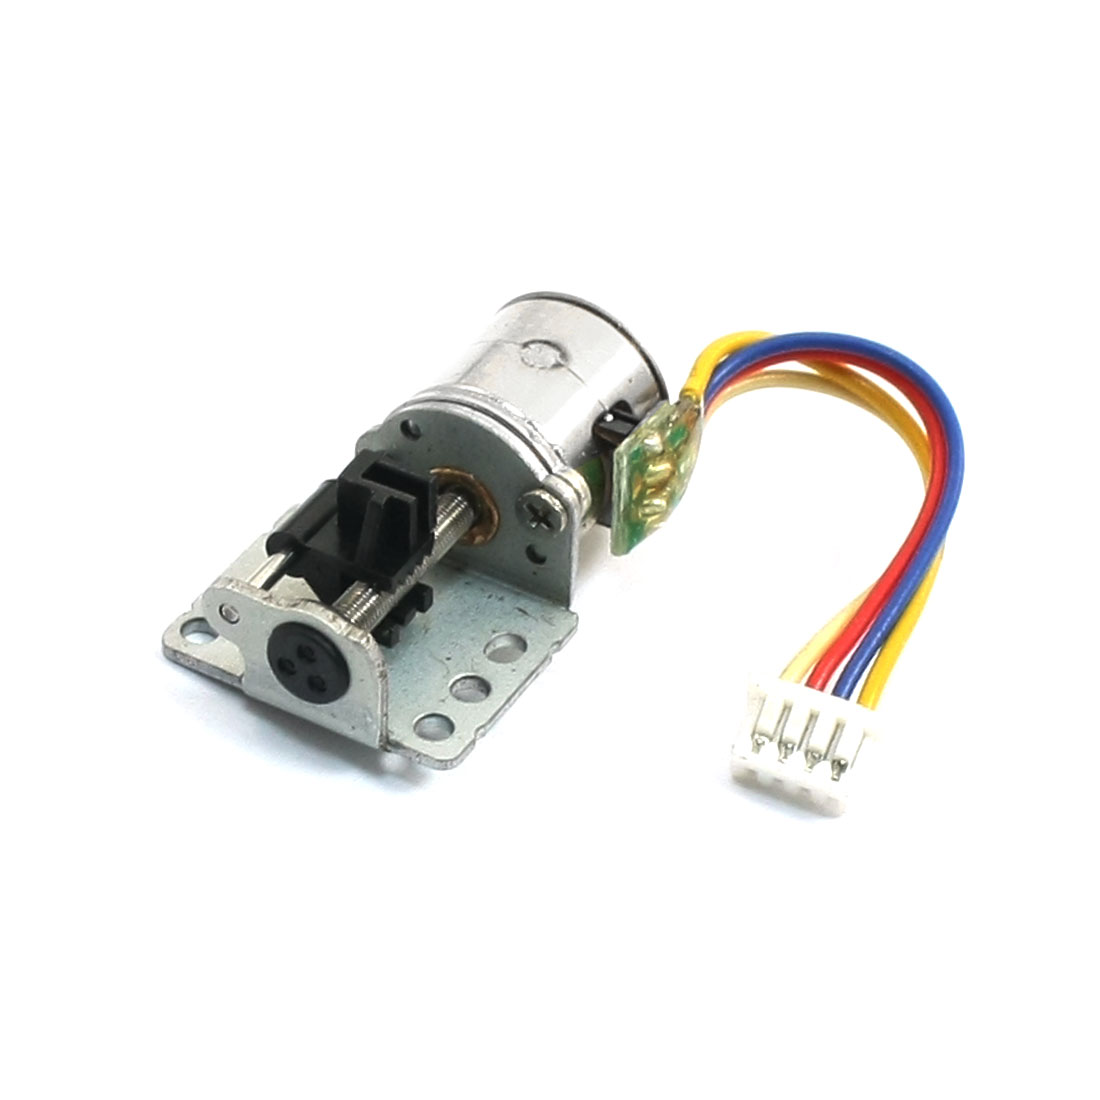 80RPM-Speed-2Phase-380mA-Current-Micro-DC-Stepper-Motor-w-Cable